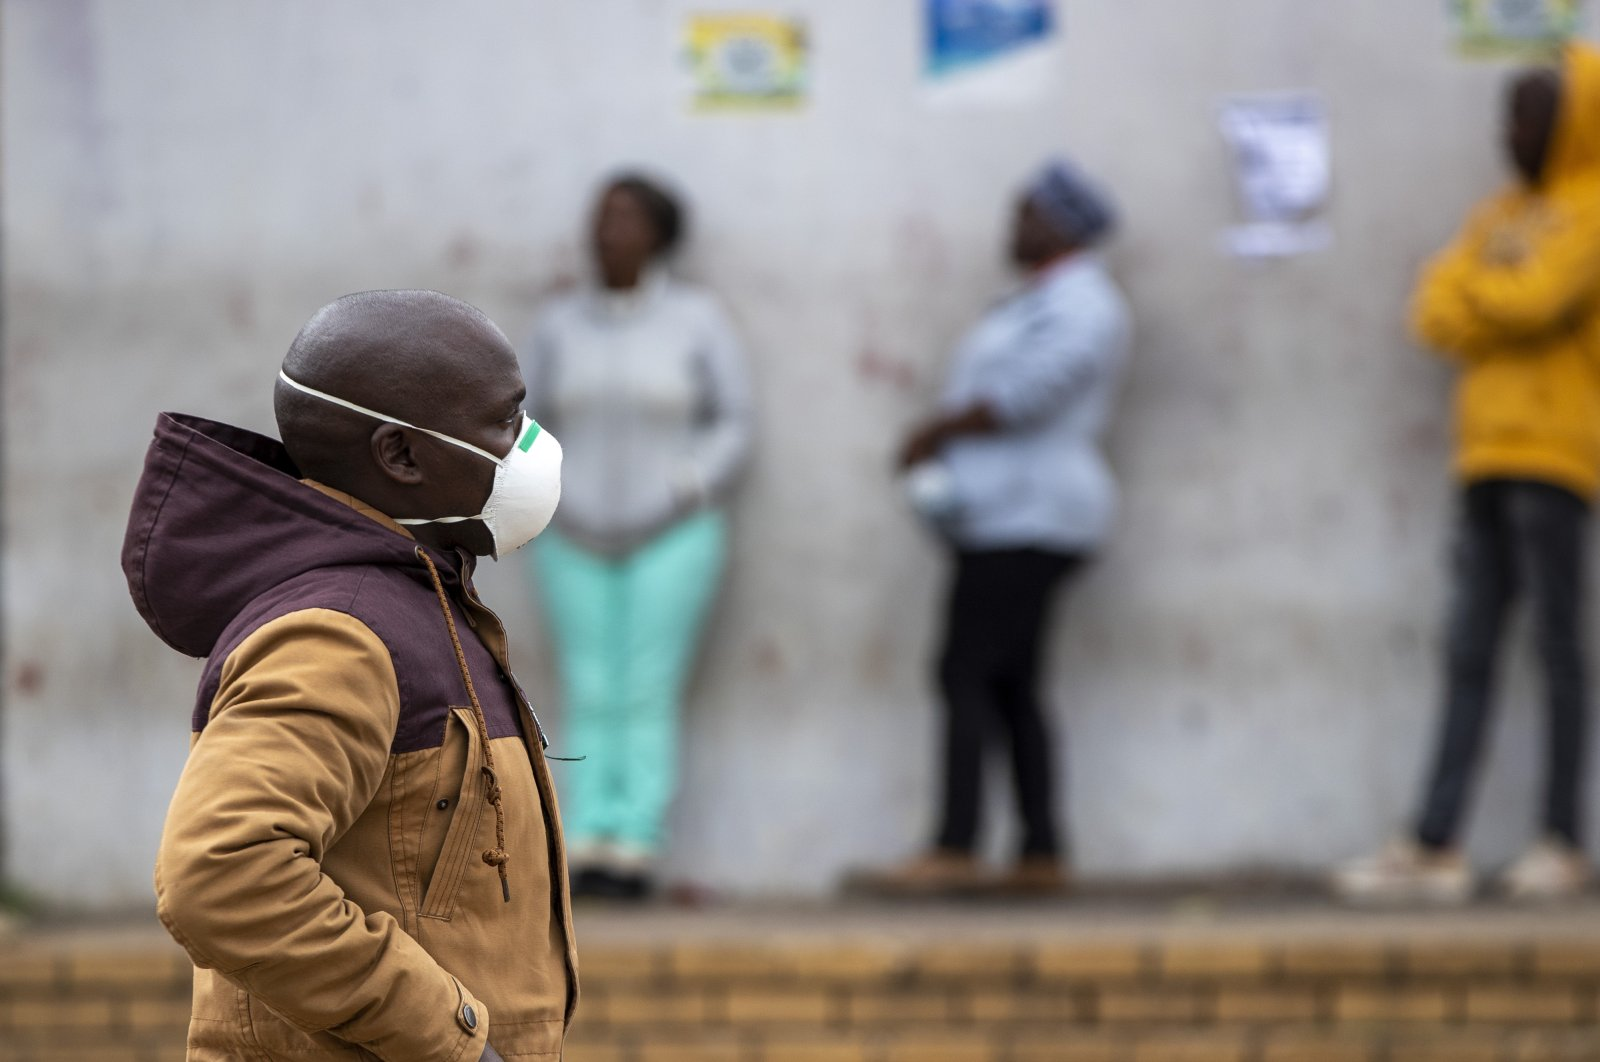 A man wearing a face mask to protect himself against the coronavirus walks past people queuing for shopping in Duduza, east of Johannesburg, South Africa, April 2, 2020. South Africa went into a nationwide lockdown for 21 days in an effort to mitigate the spread to the coronavirus. (AP Photo)